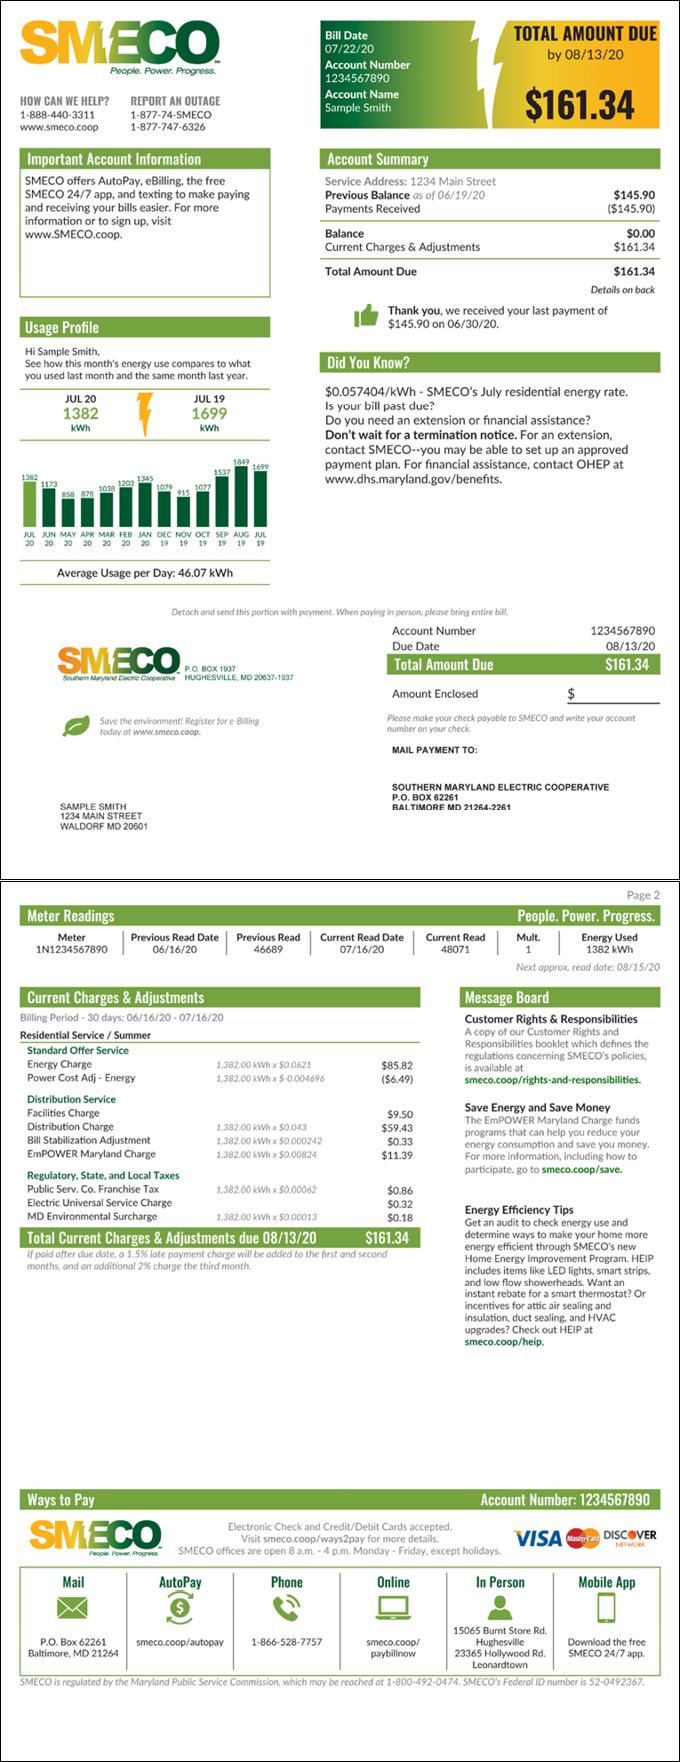 SMECO Sample Residential Energy Bill